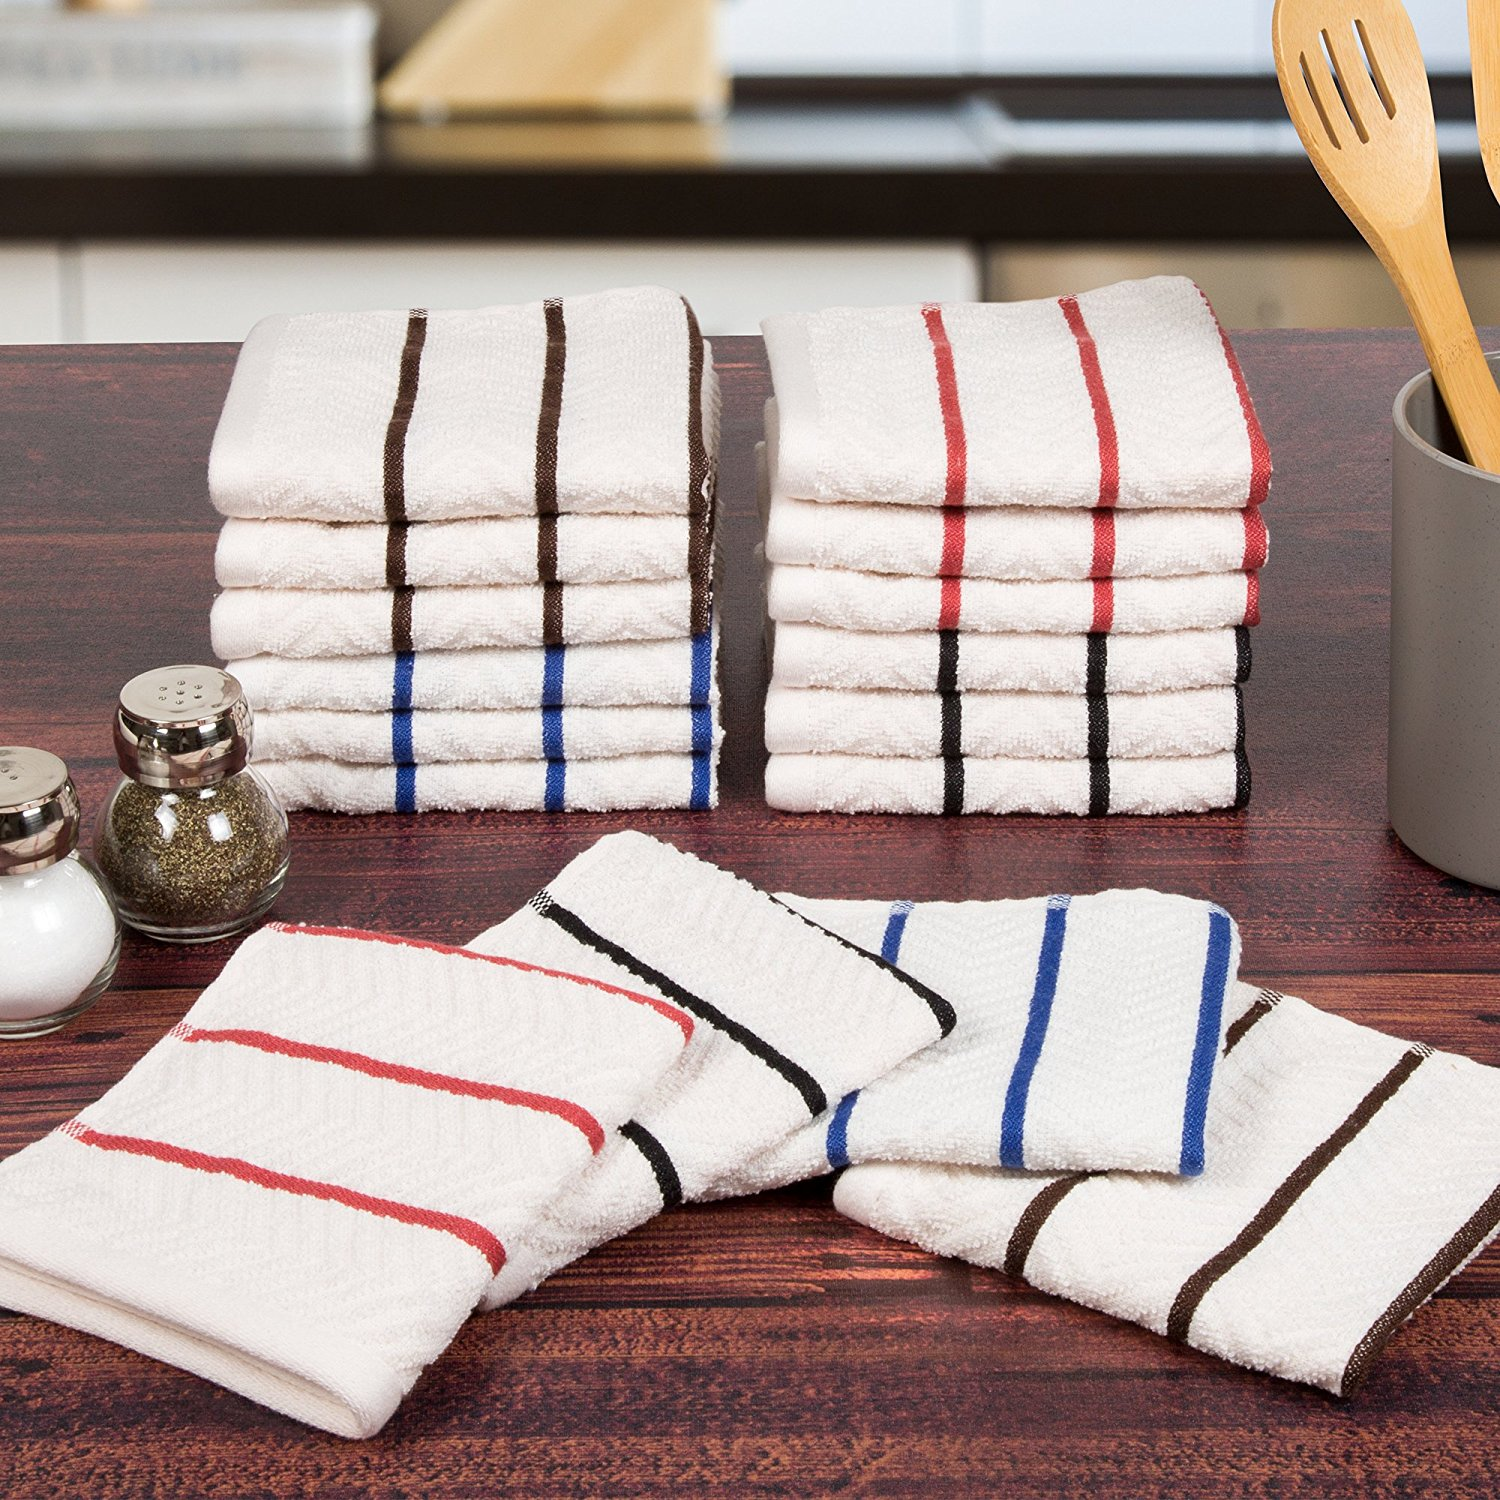 16 Piece 100% Cotton Chevron Terry Kitchen Towel Washcloth Set, 100% Egyptian Cotton By Lavish Home